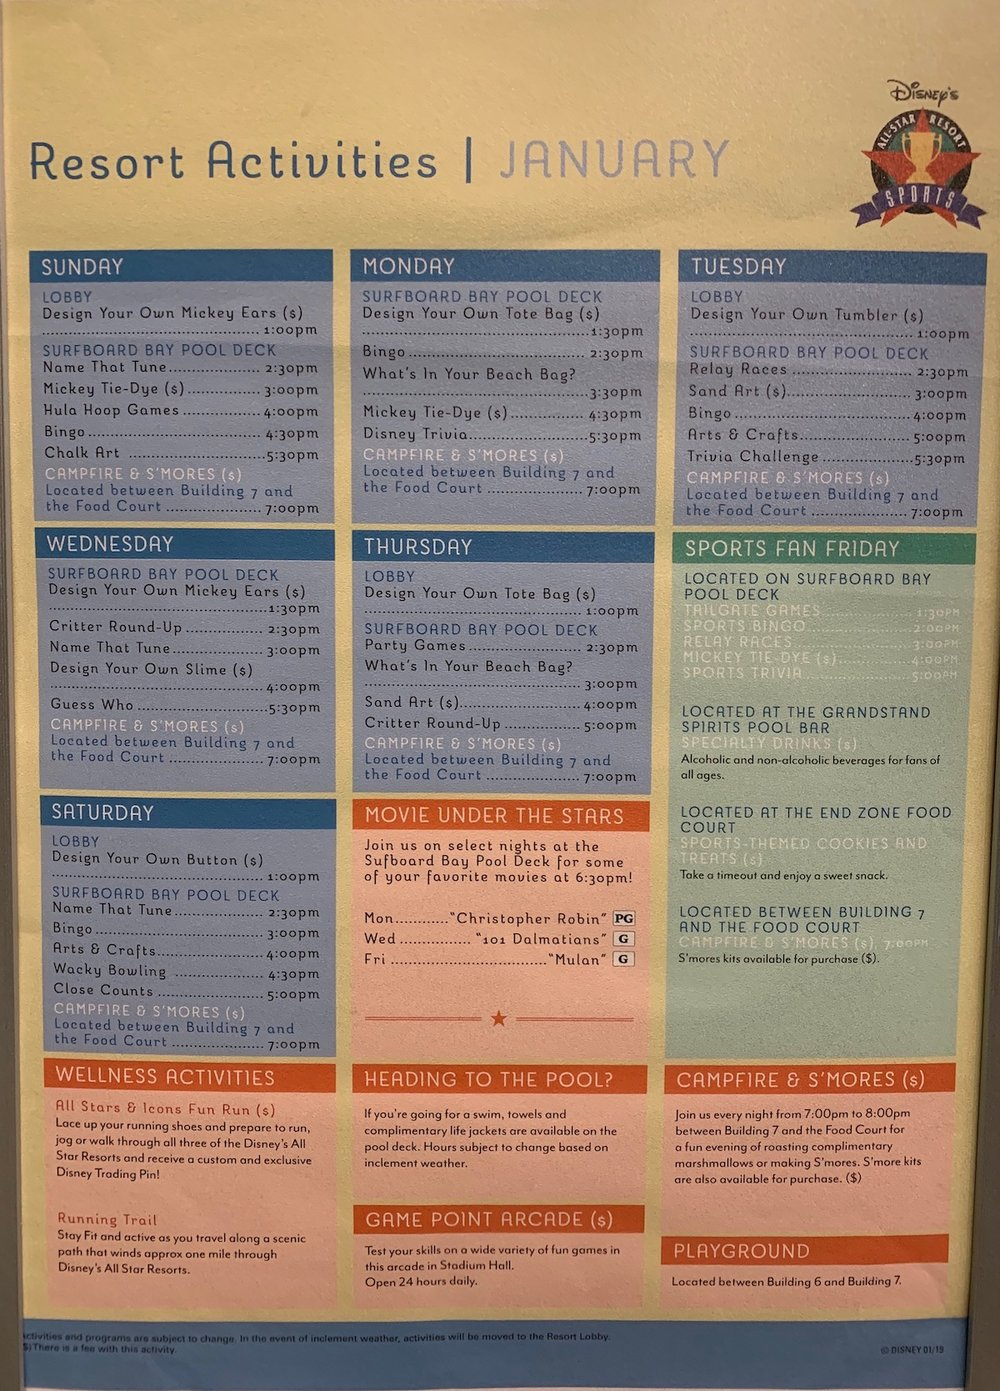 disney world all star sports review schedule.jpeg